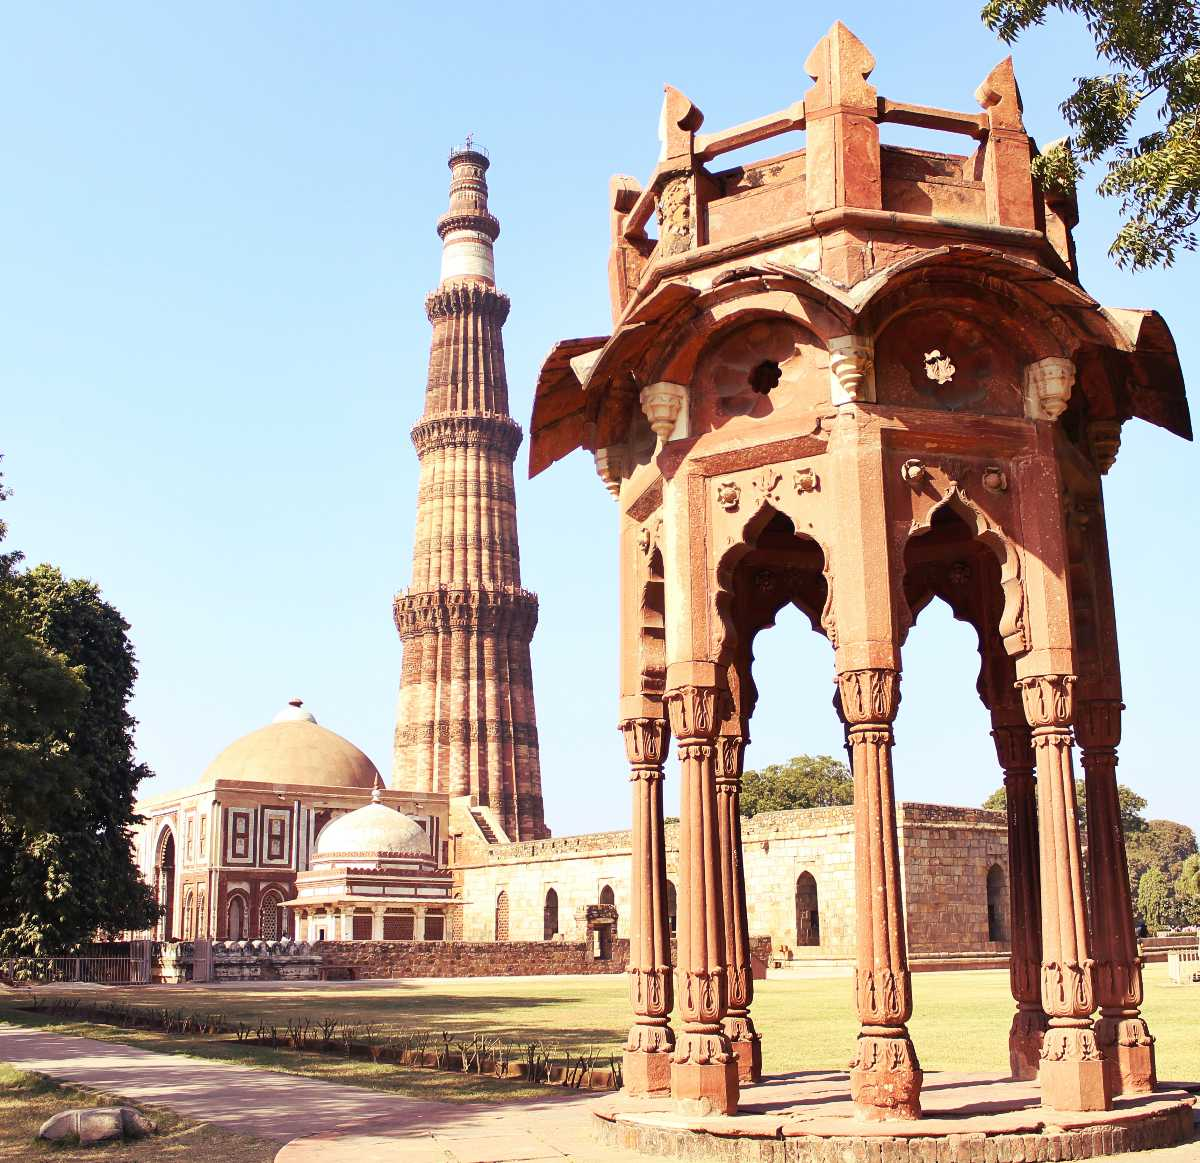 Architecture of Qutub Minar